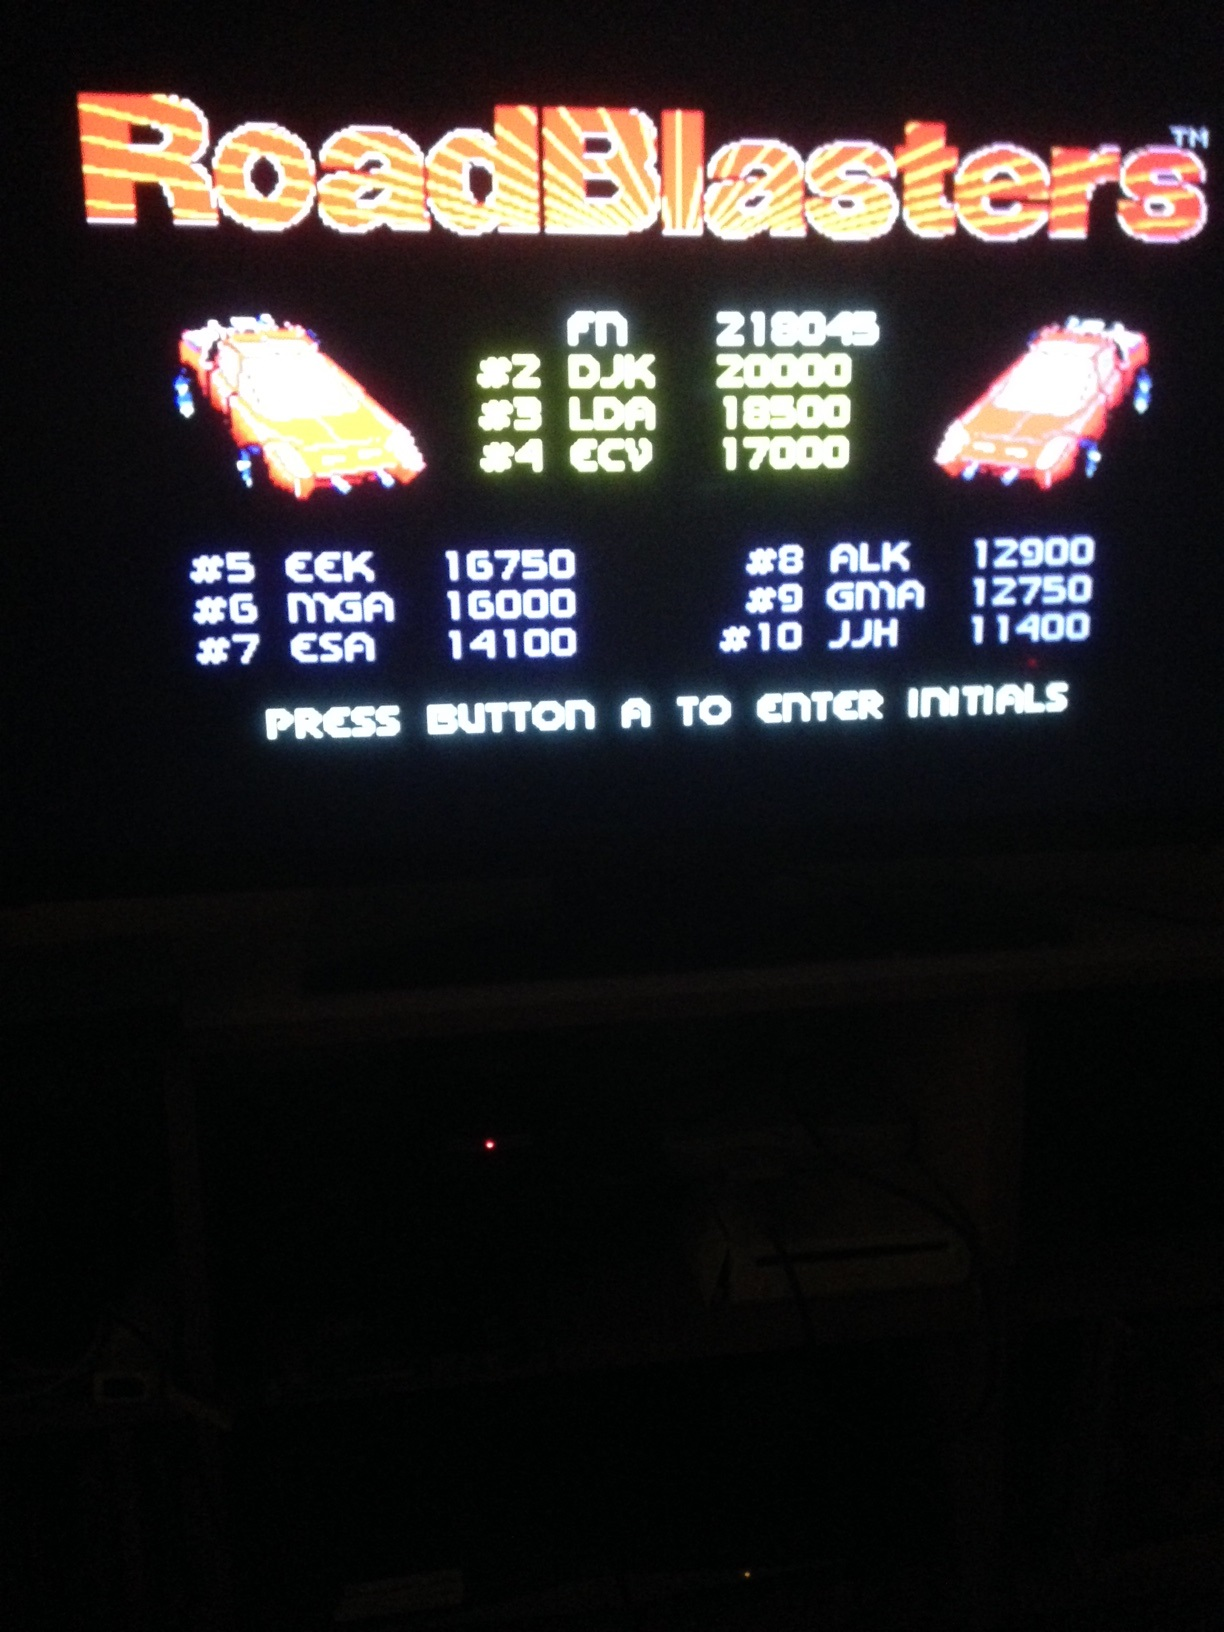 mechafatnick: Roadblasters (Sega Genesis / MegaDrive) 218,045 points on 2015-03-16 01:54:34